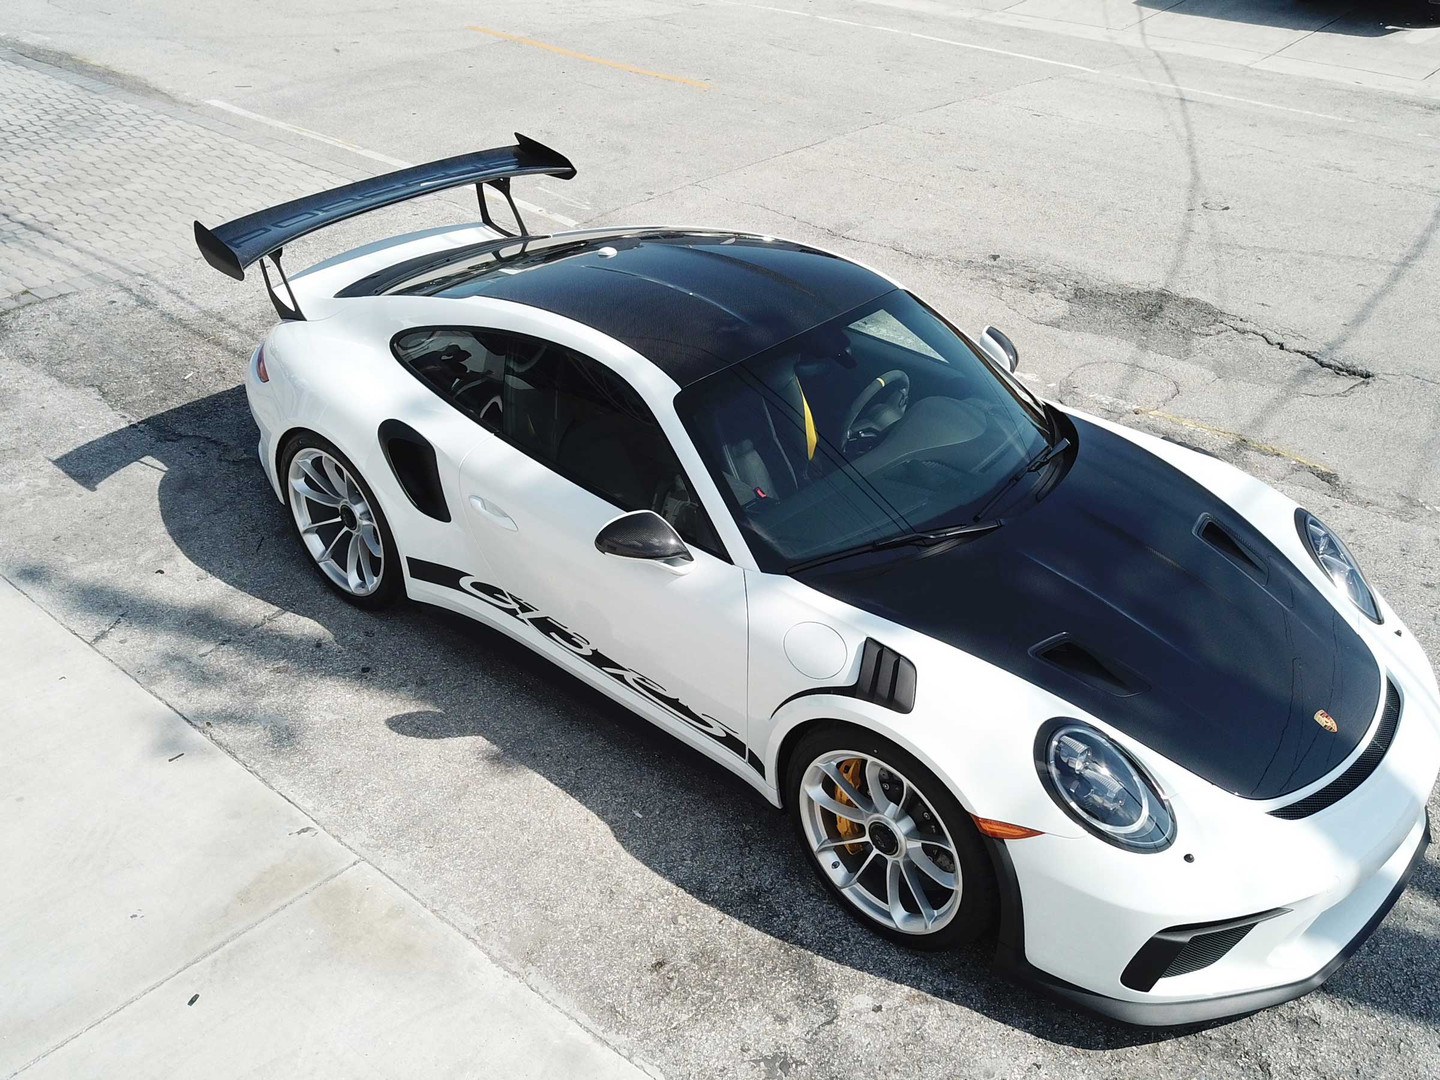 Porsche GT3RS - Full Paint Protection Film Miami